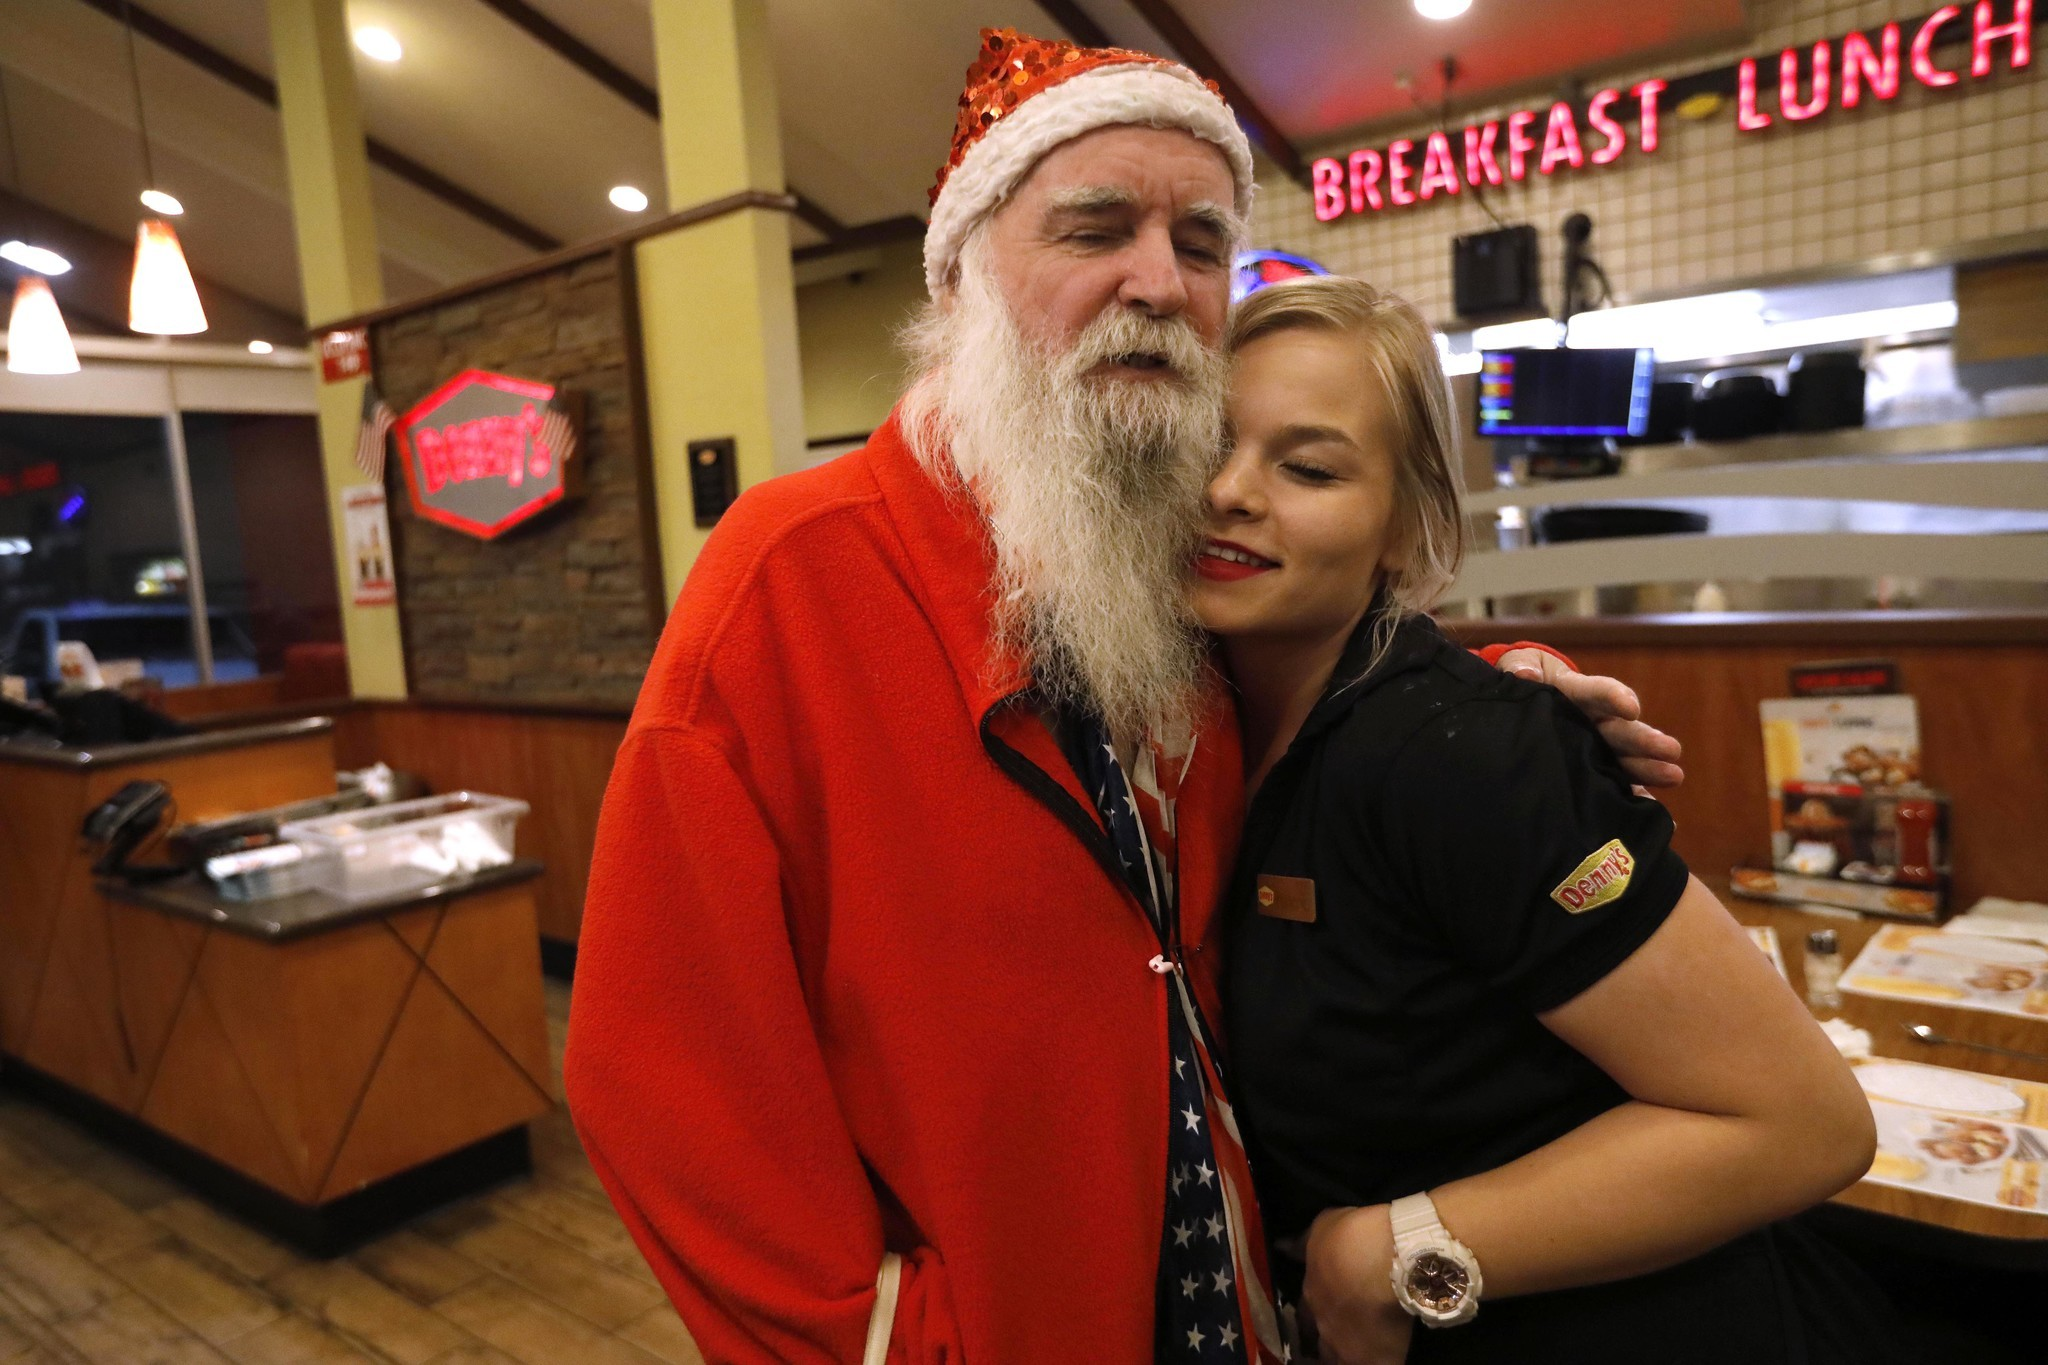 James Zyla gets a hug from waitress Kaylene Purcell, 17, at a Denny's restaurant in Kingman. Purcell helped Zyla get a gig at the Ramada Hotel where he played his keyboard for fr